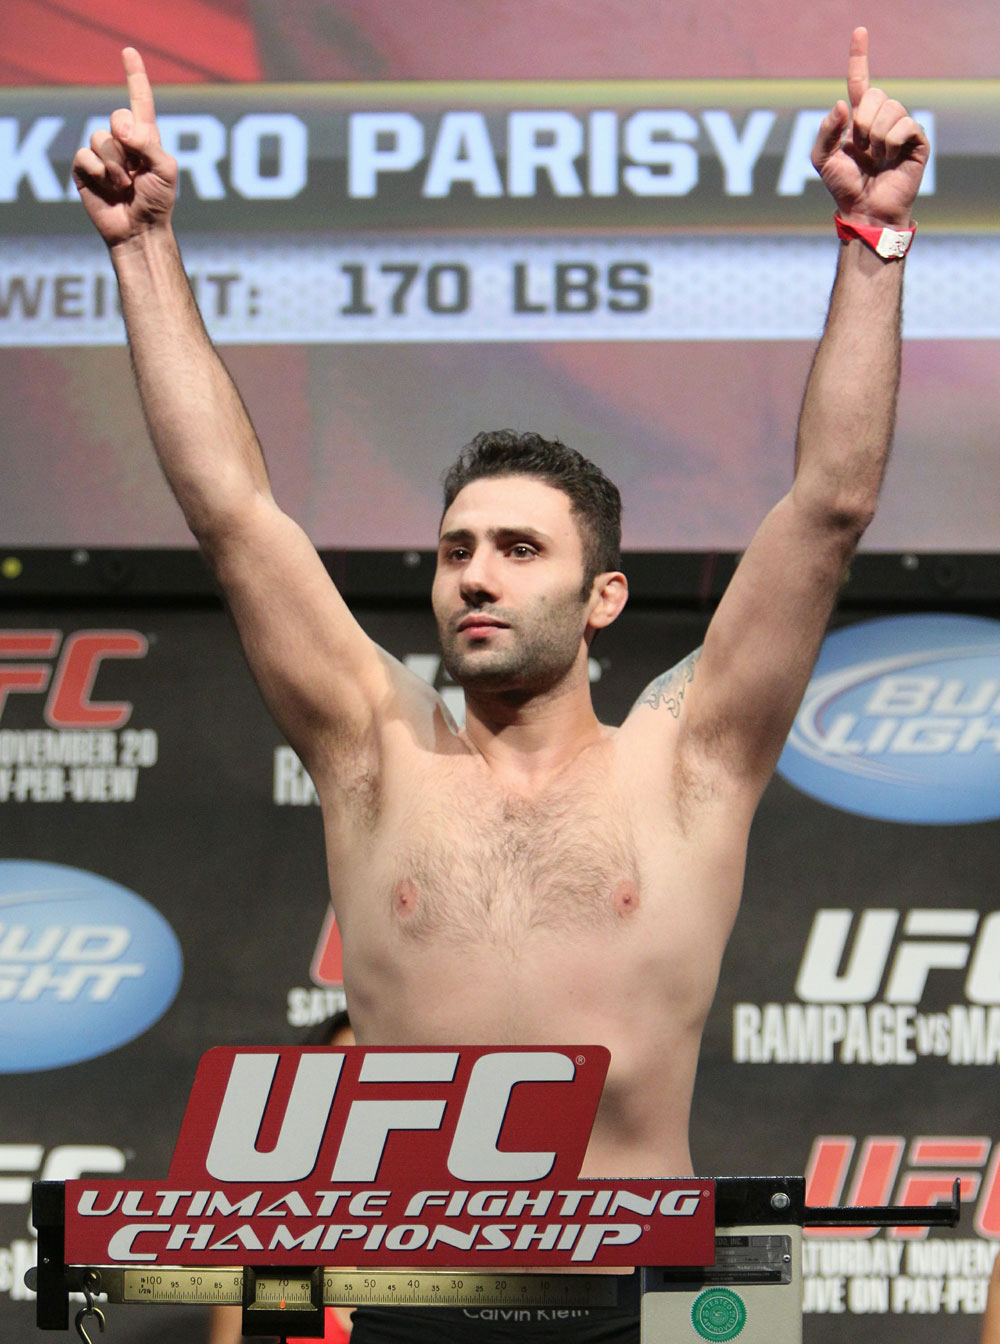 Karo Parisyan weighs in at 170 lbs at the UFC 123 weigh-in at the Palace of Auburn Hills on November 19, 2010 in Auburn Hills, Michigan.  (Photo by Josh Hedges/Zuffa LLC/Zuffa LLC via Getty Images)